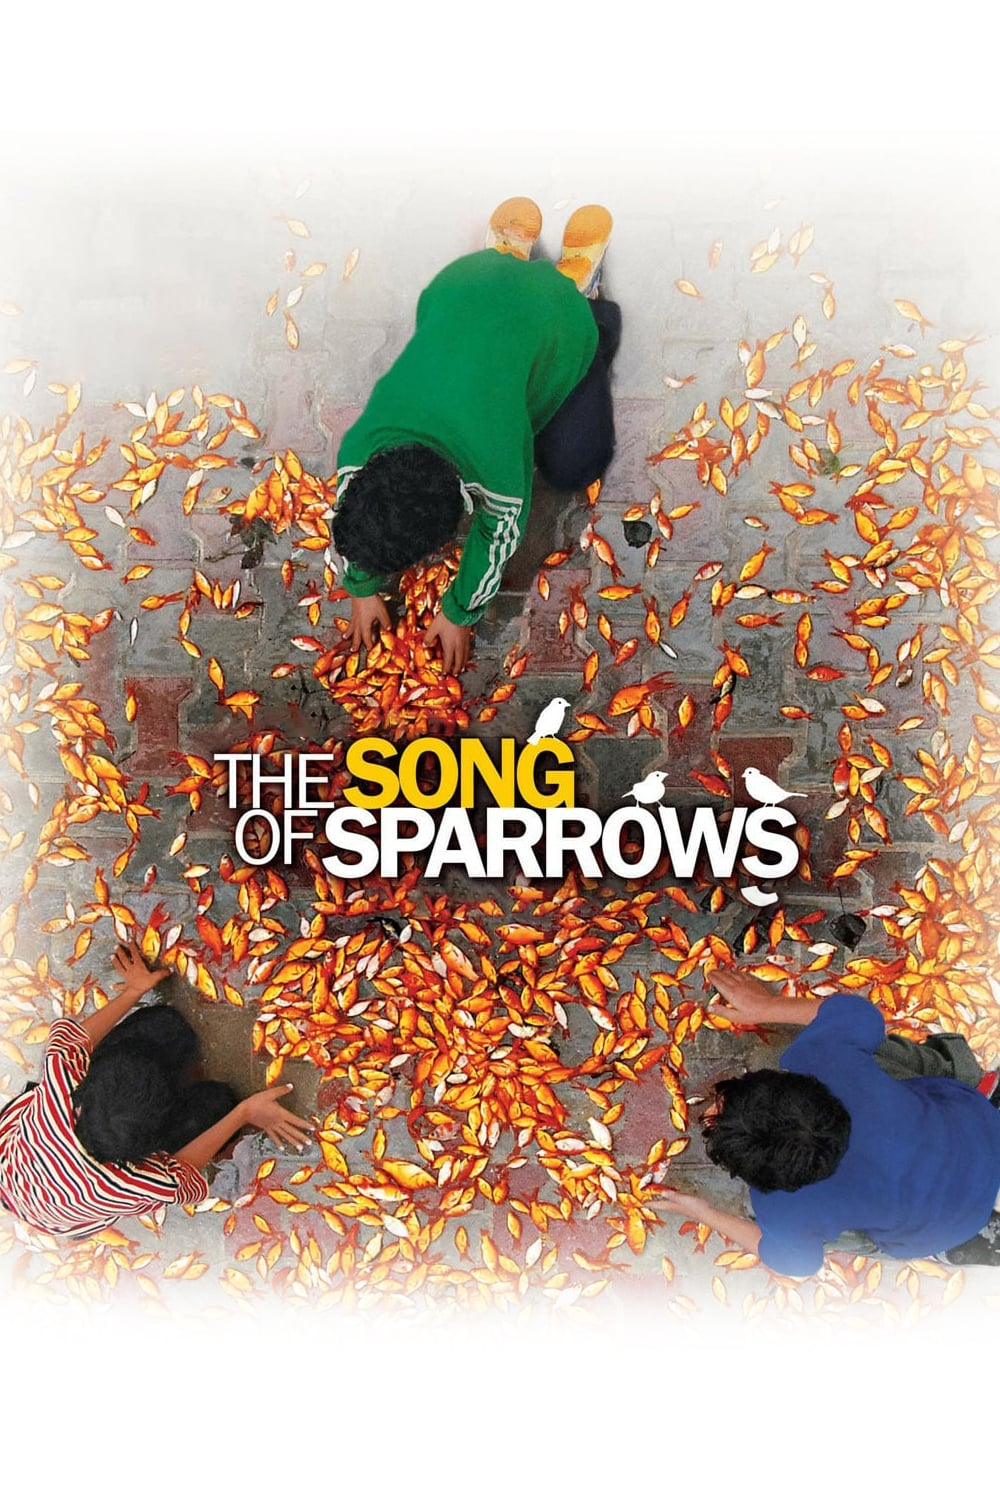 The Song of Sparrows Trailer